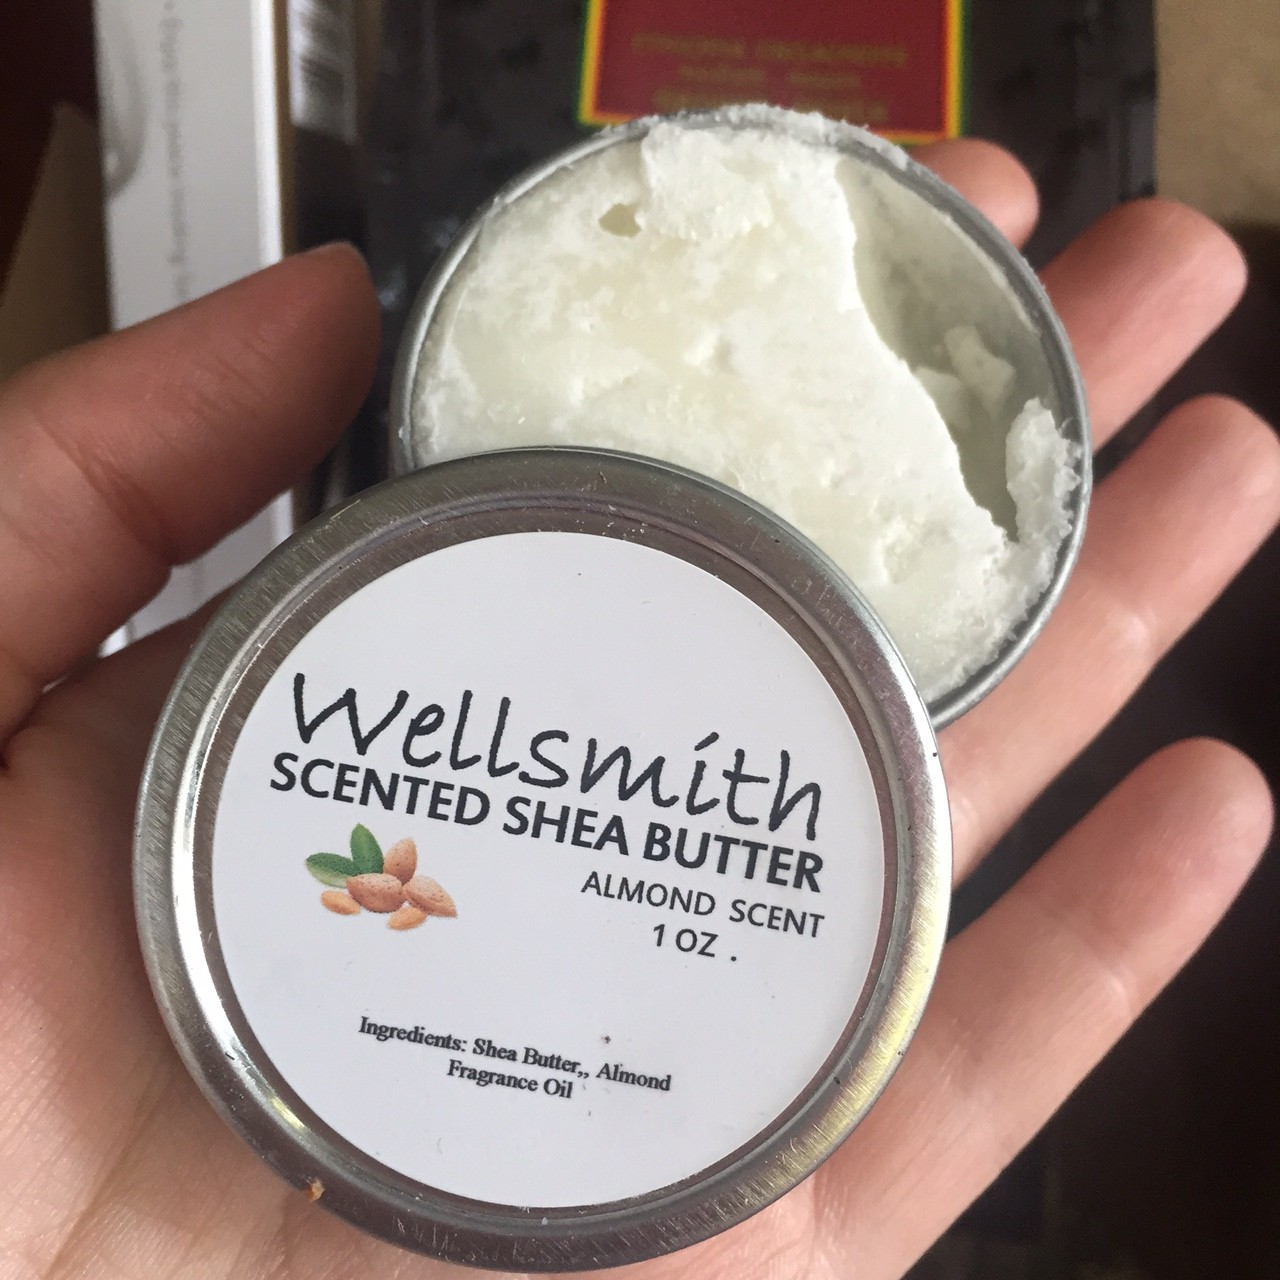 Wellsmith Scented Shea Butter